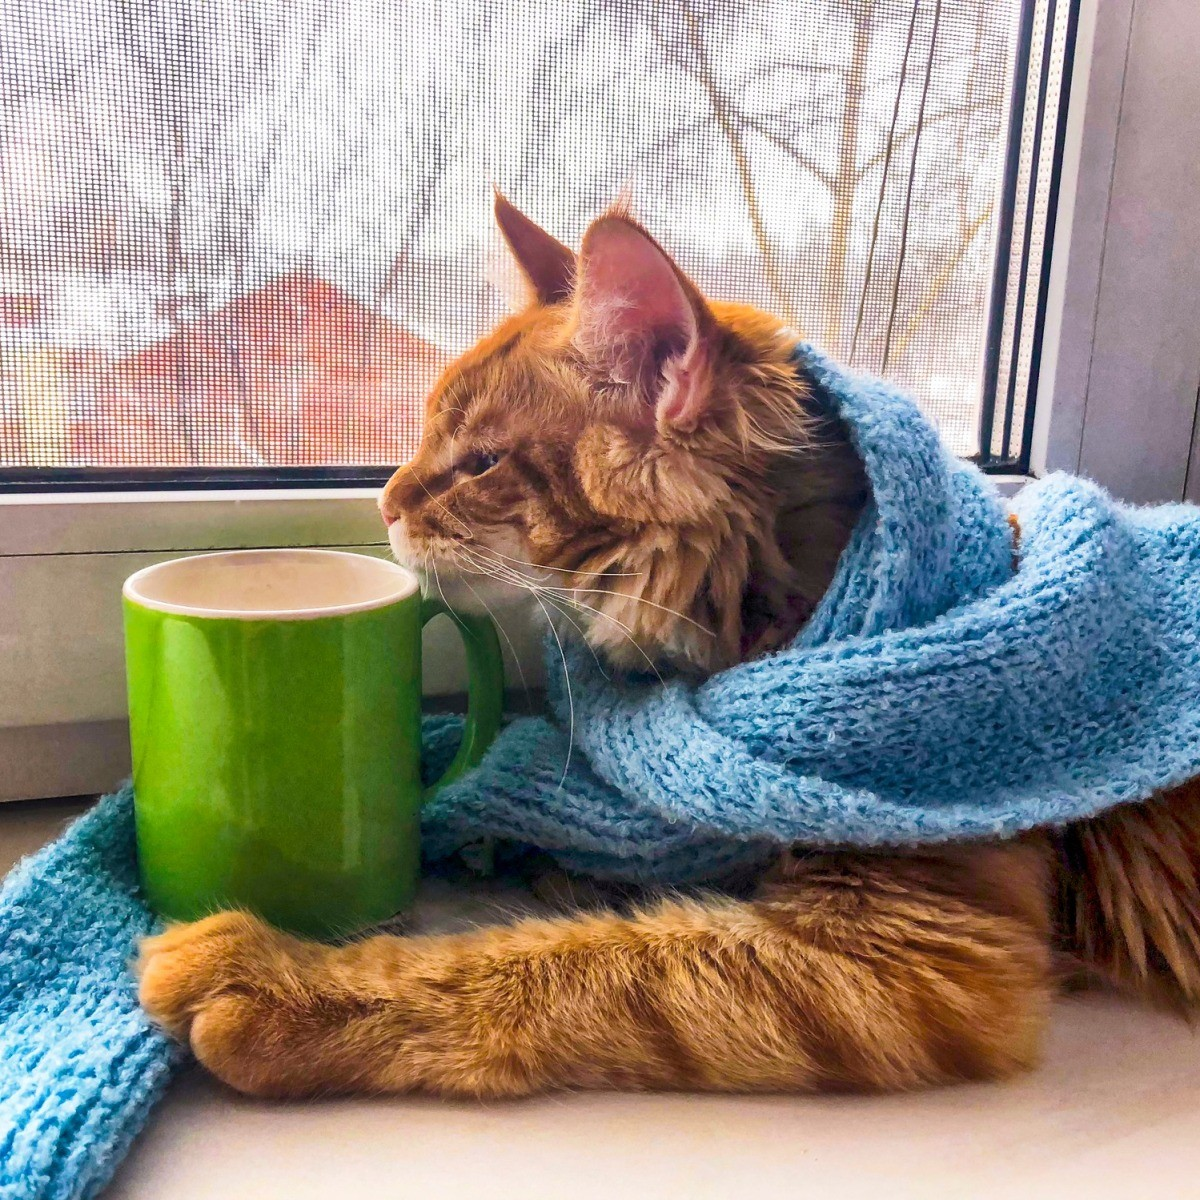 Keeping Cats Warm in Winter | ThriftyFun